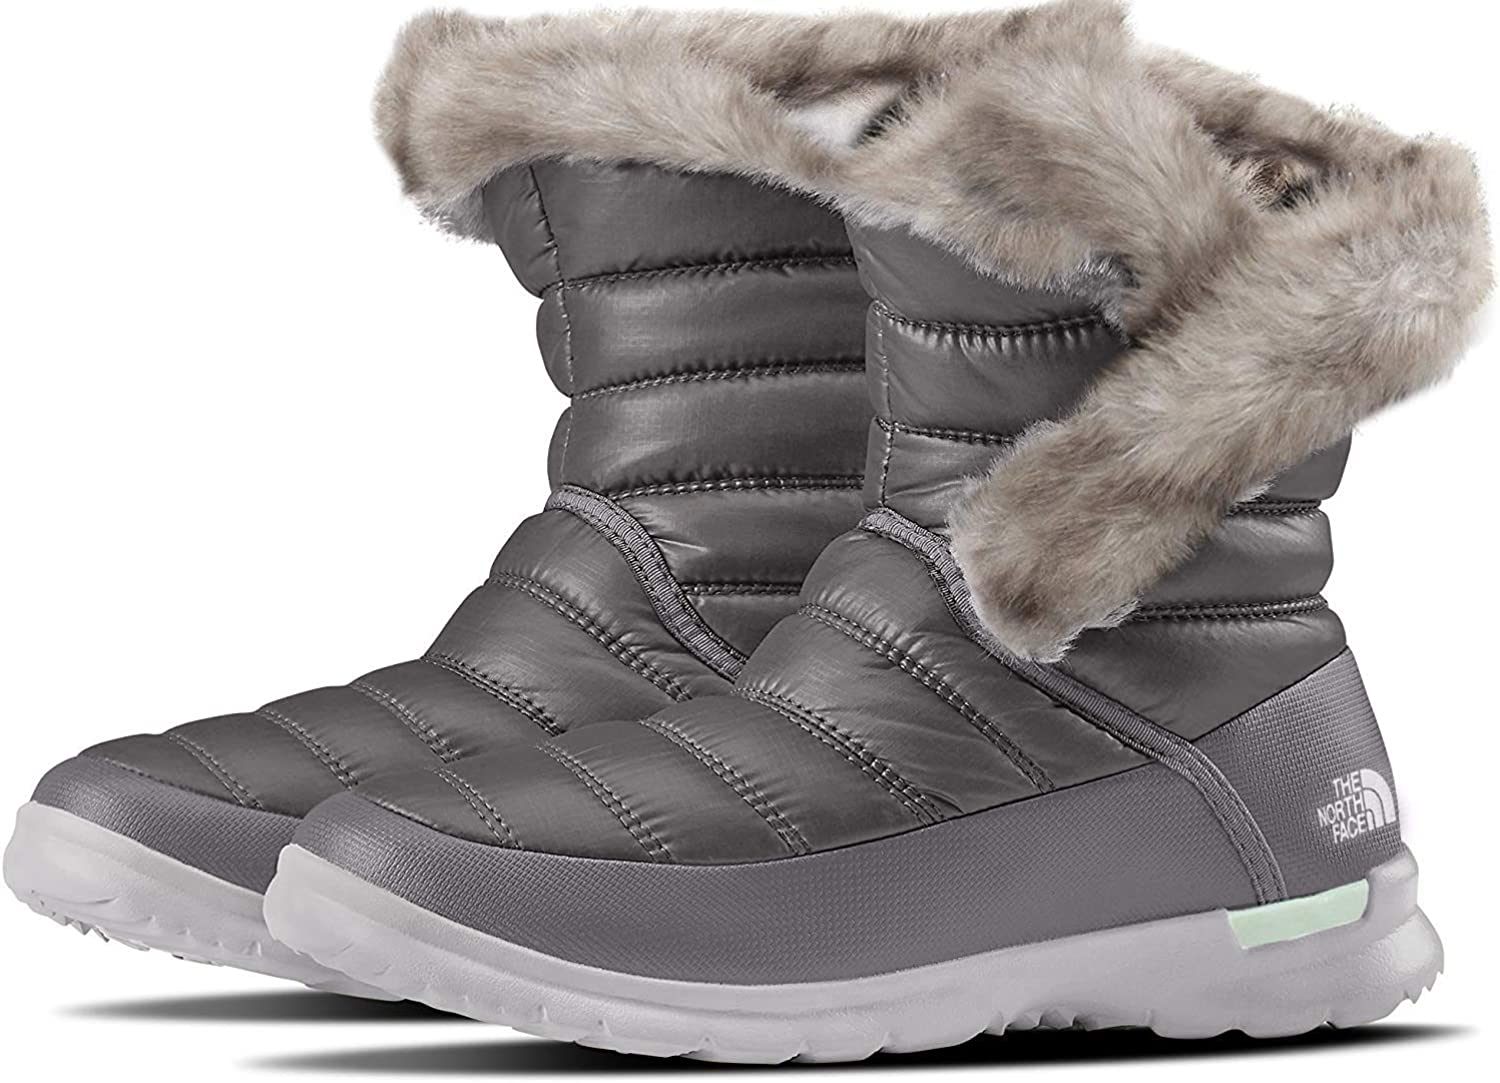 The North Face Women's Thermoball Microbaffle Bootie II